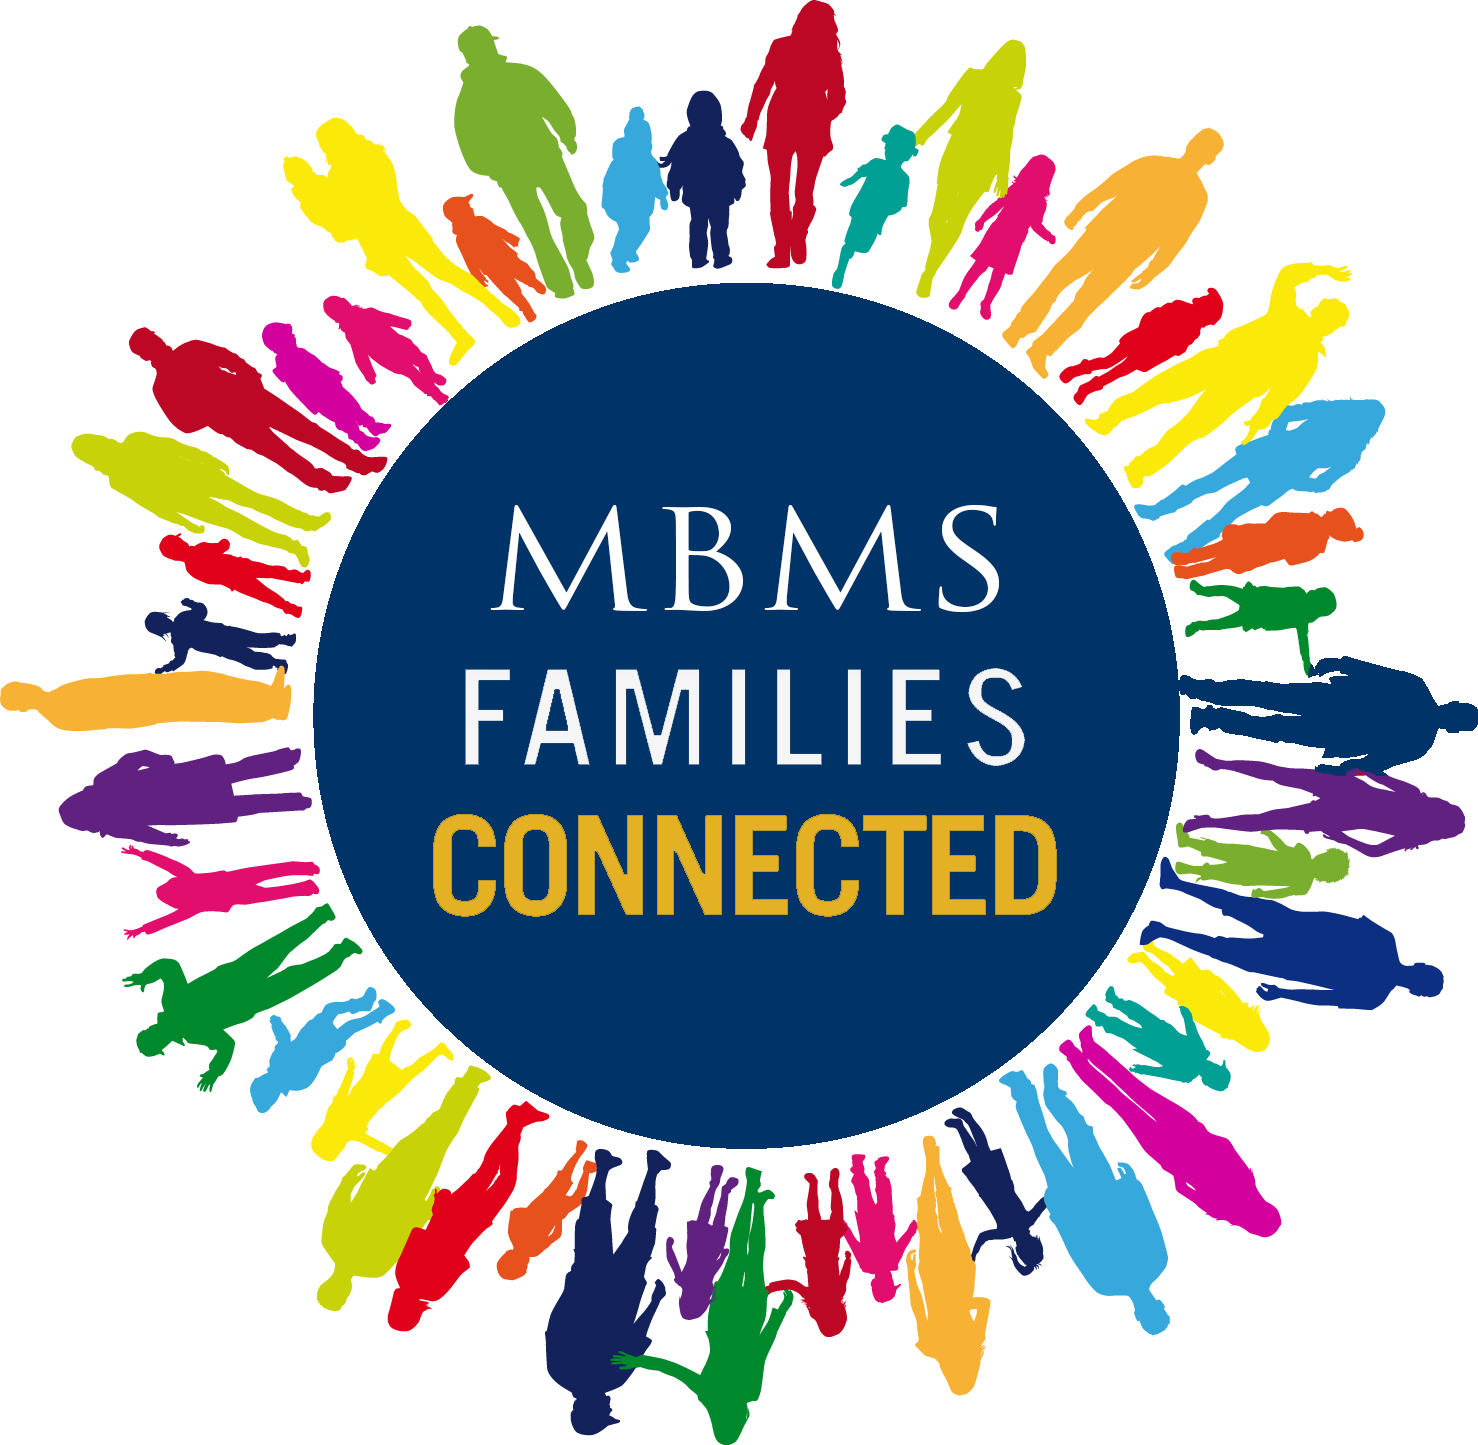 MBMS Families Connected